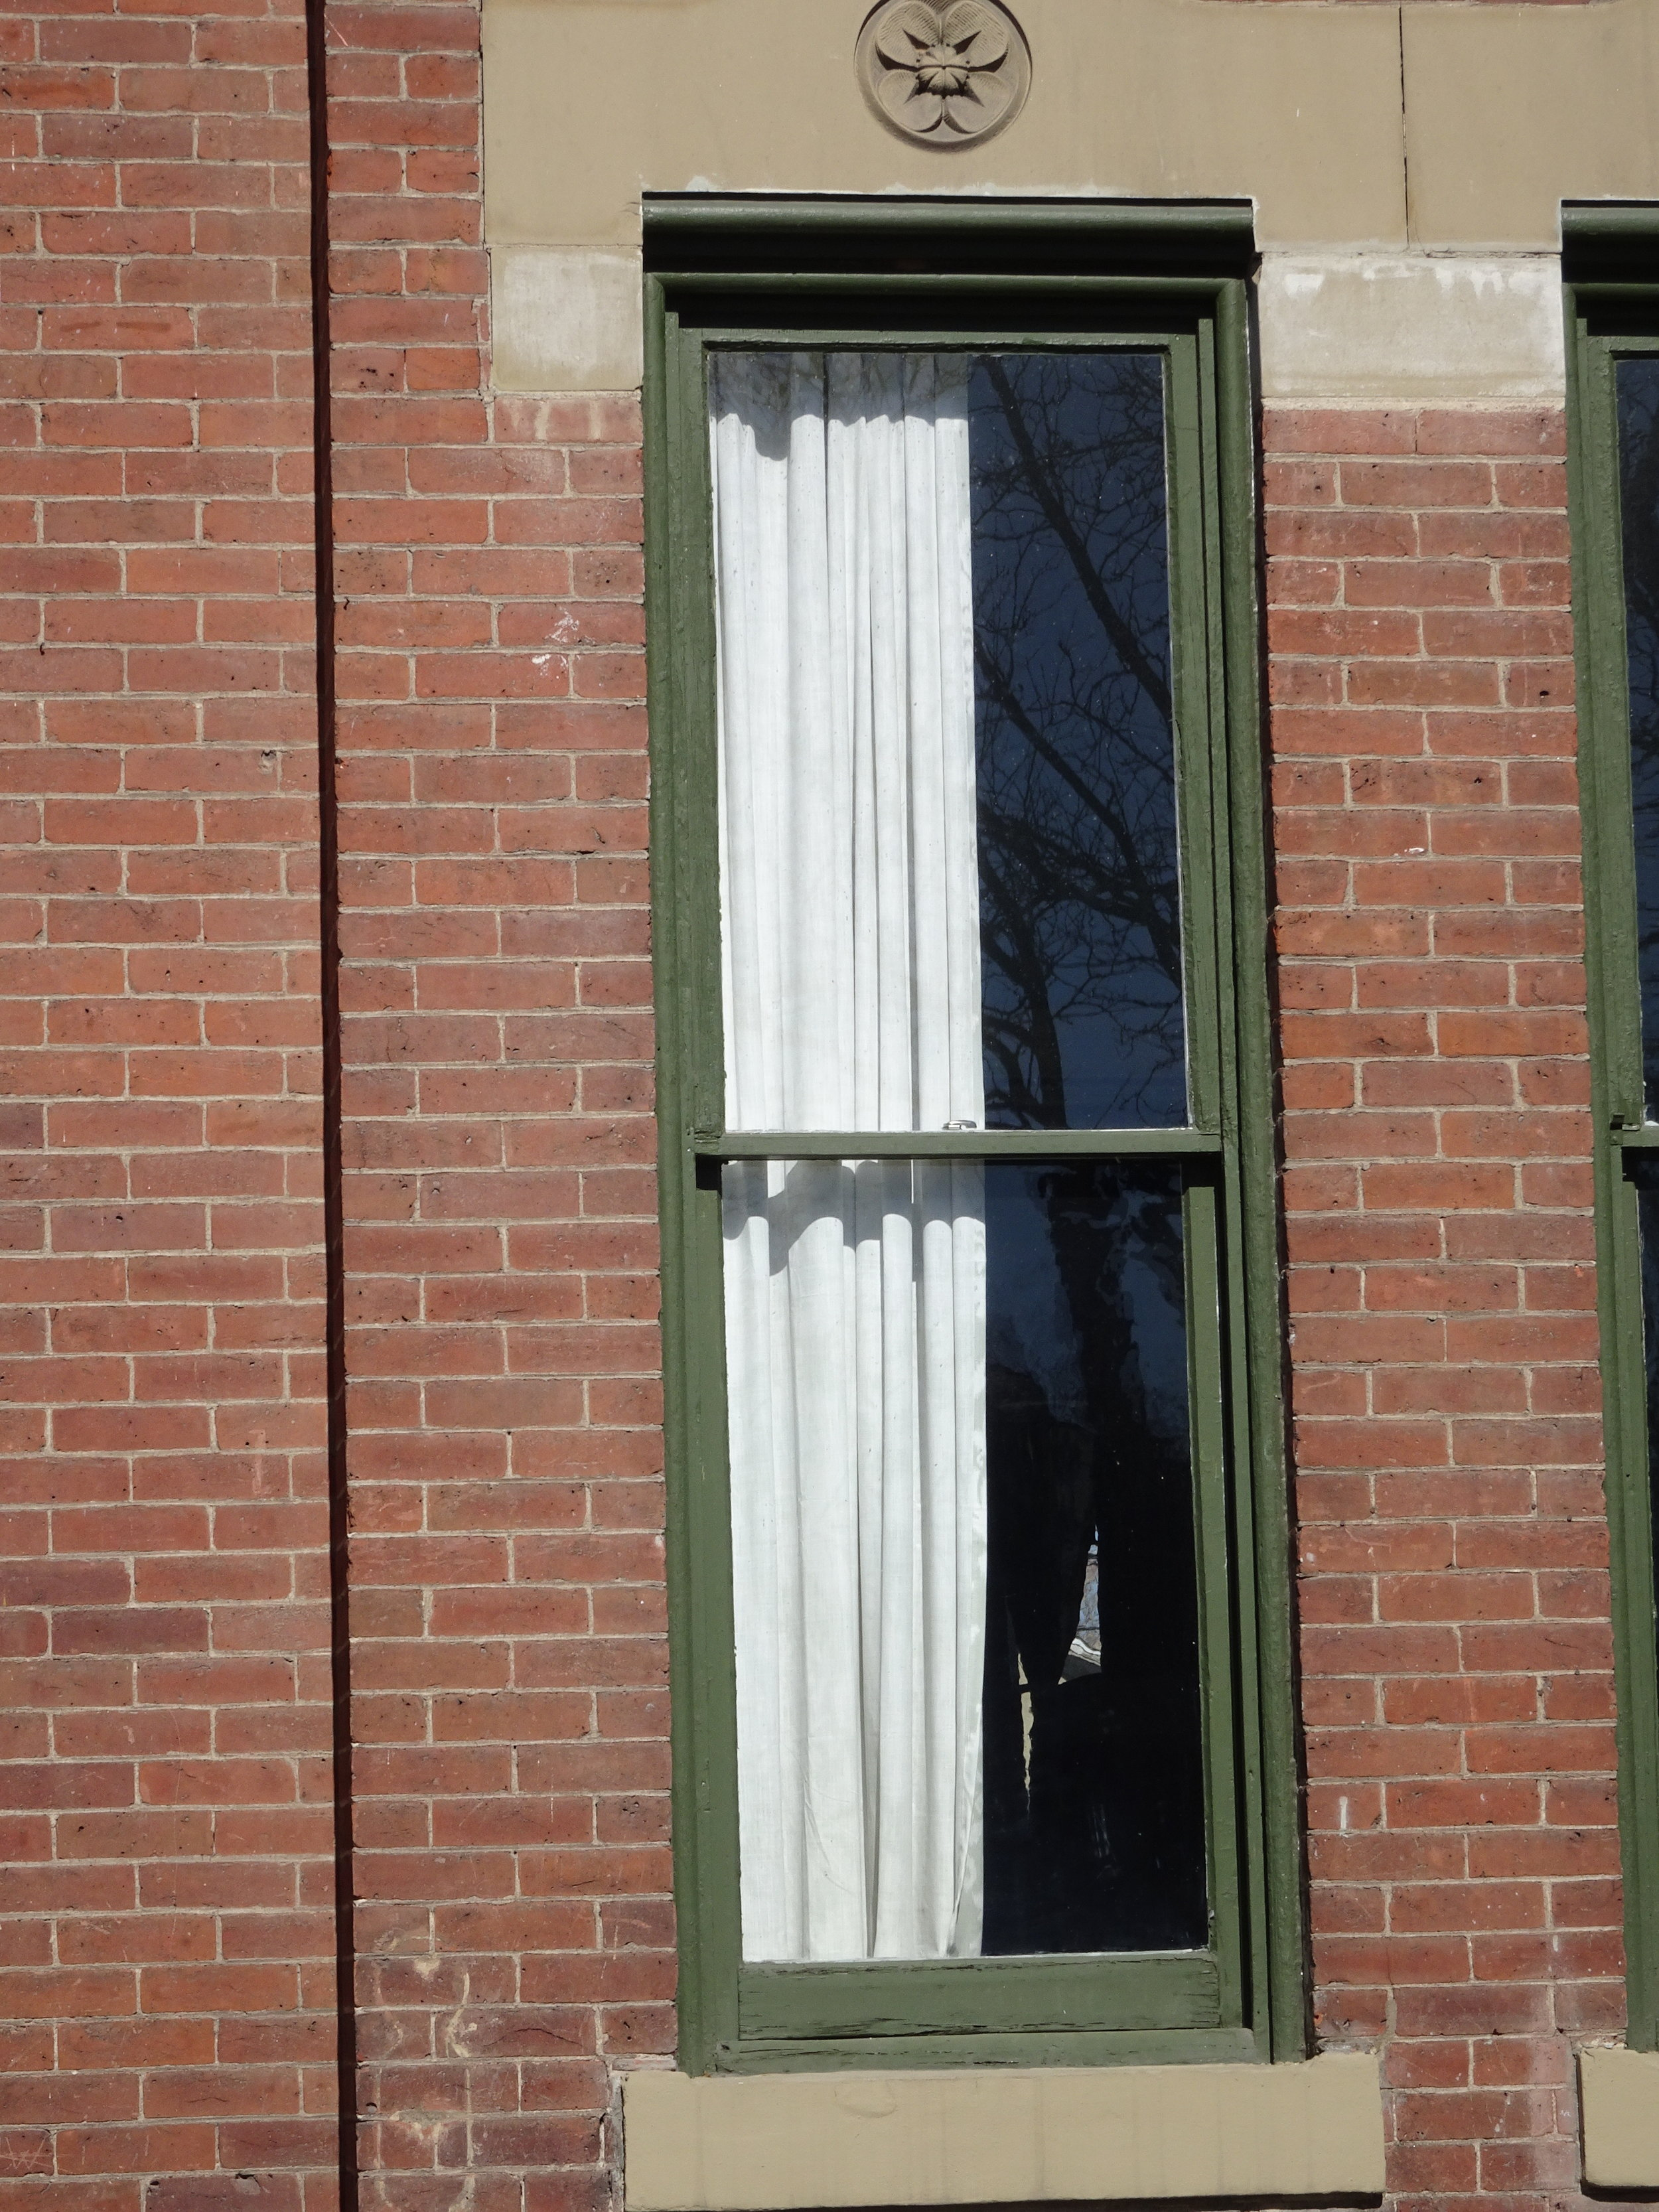 Most windows are simple, with a single pane of glass in the upper and lower sashes.